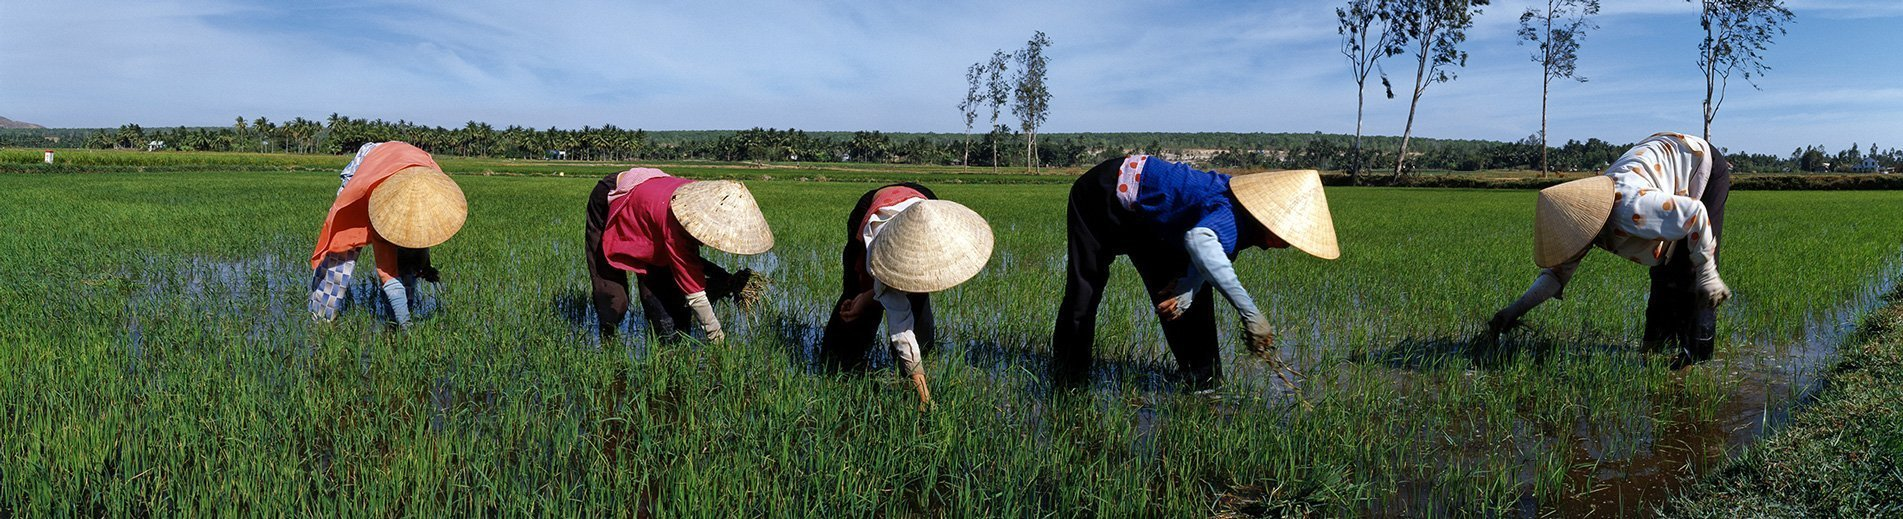 Women working in a ricefield in Vietnam - Photography by Hans Kemp